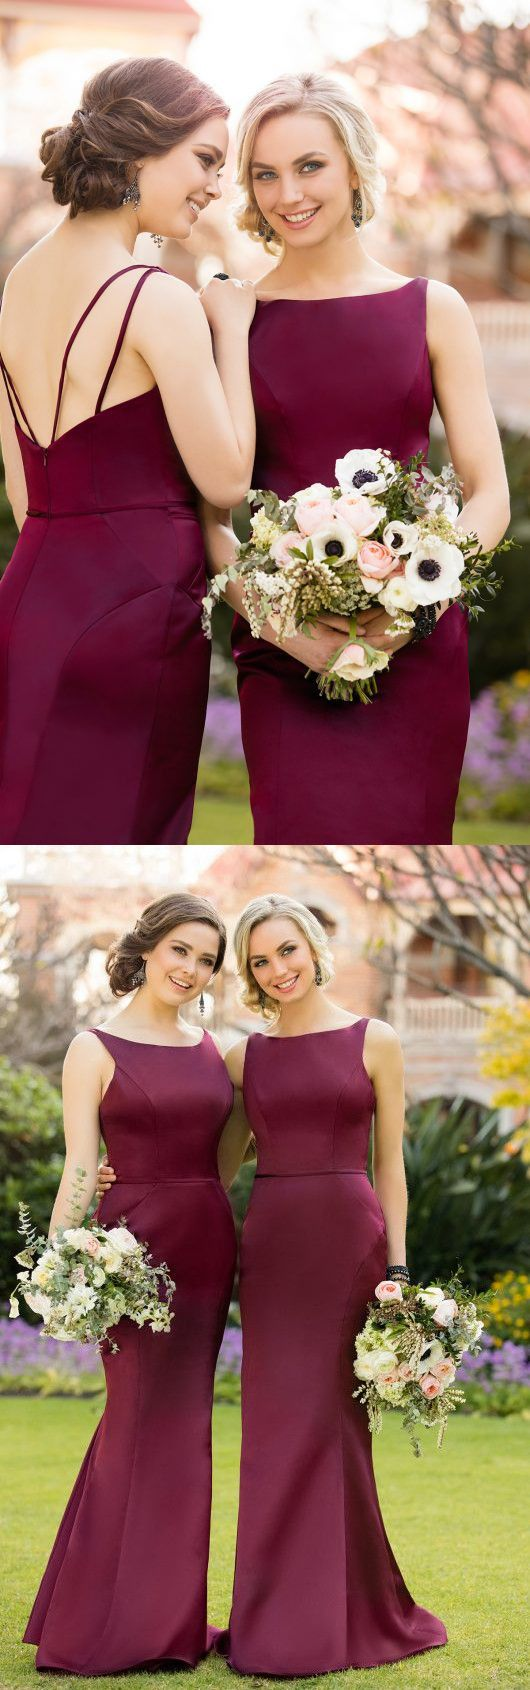 Best 25 maroon bridesmaid dresses ideas on pinterest maroon gorgeous 2017 bridesmaid dress maroon long bridesmaid dress mermaid long bridesmaid dress wedding party dress sold by modsele ombrellifo Choice Image